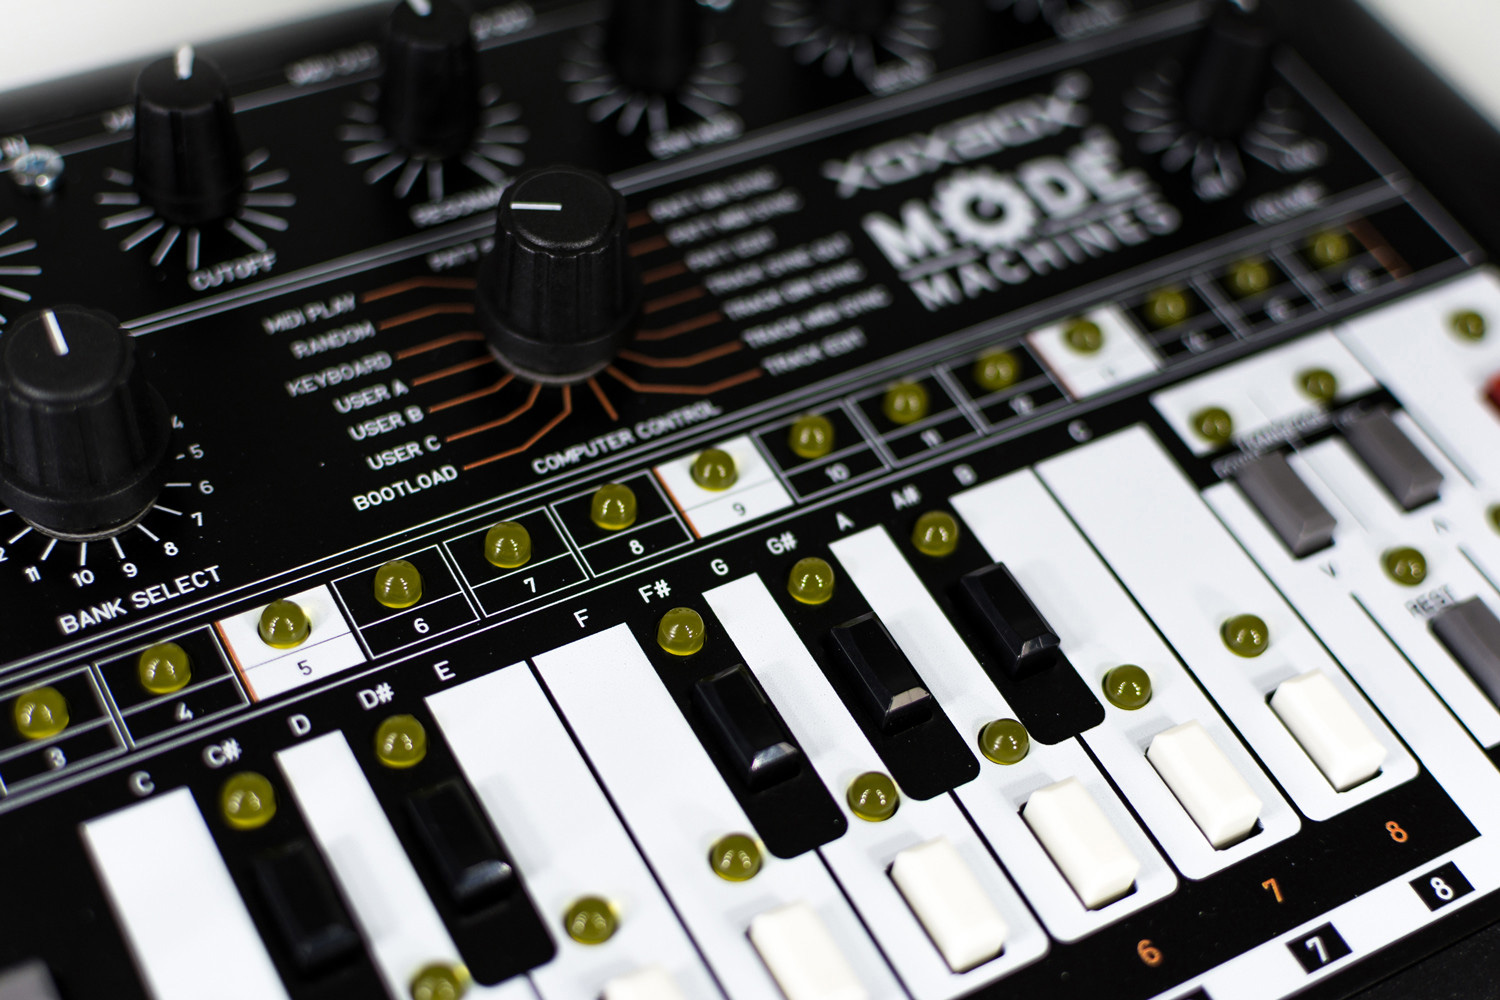 mode machines x0xb0x mk3 final edition  clone du synth u00e9 de basse analogique roland tb